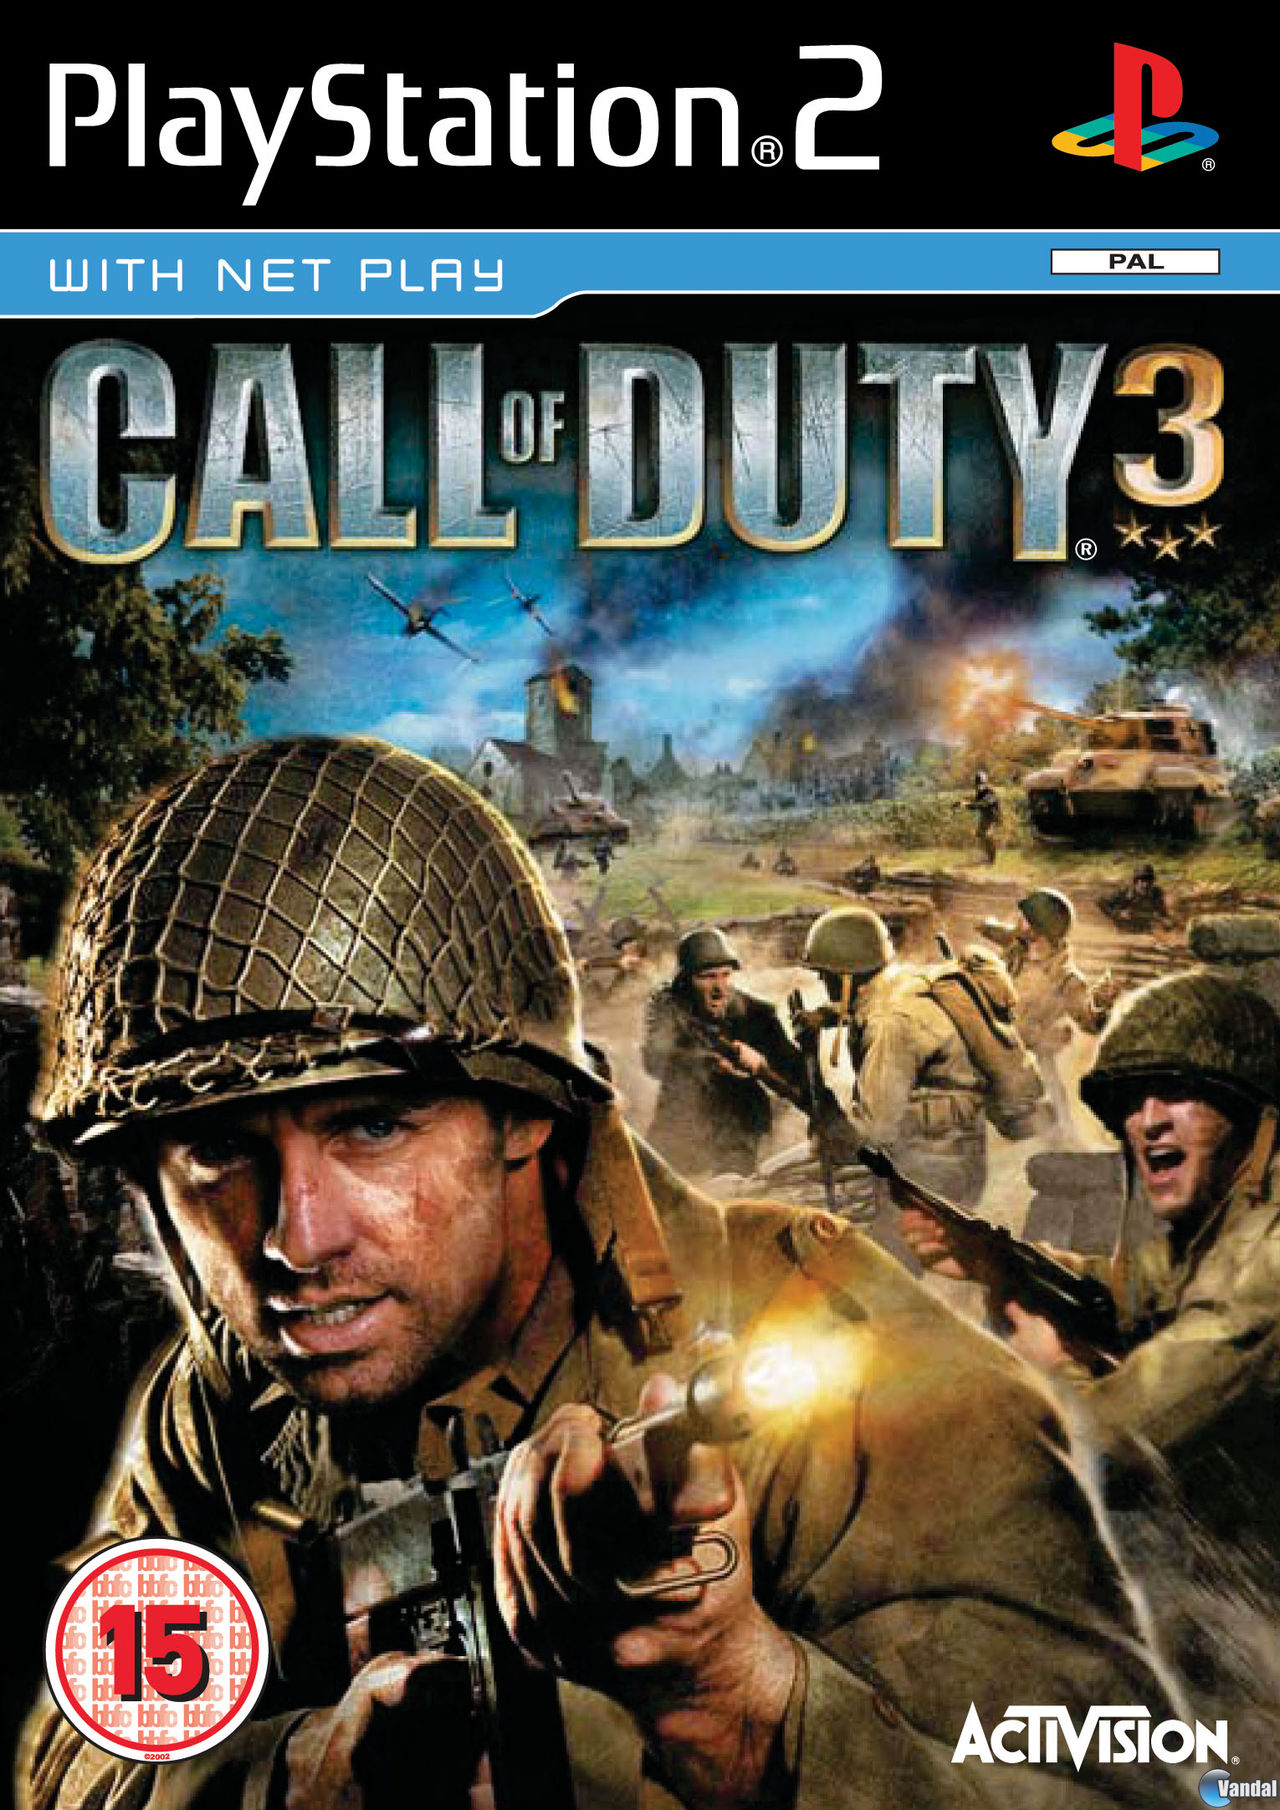 Imagen 18 de Call of Duty 3 para PlayStation 2